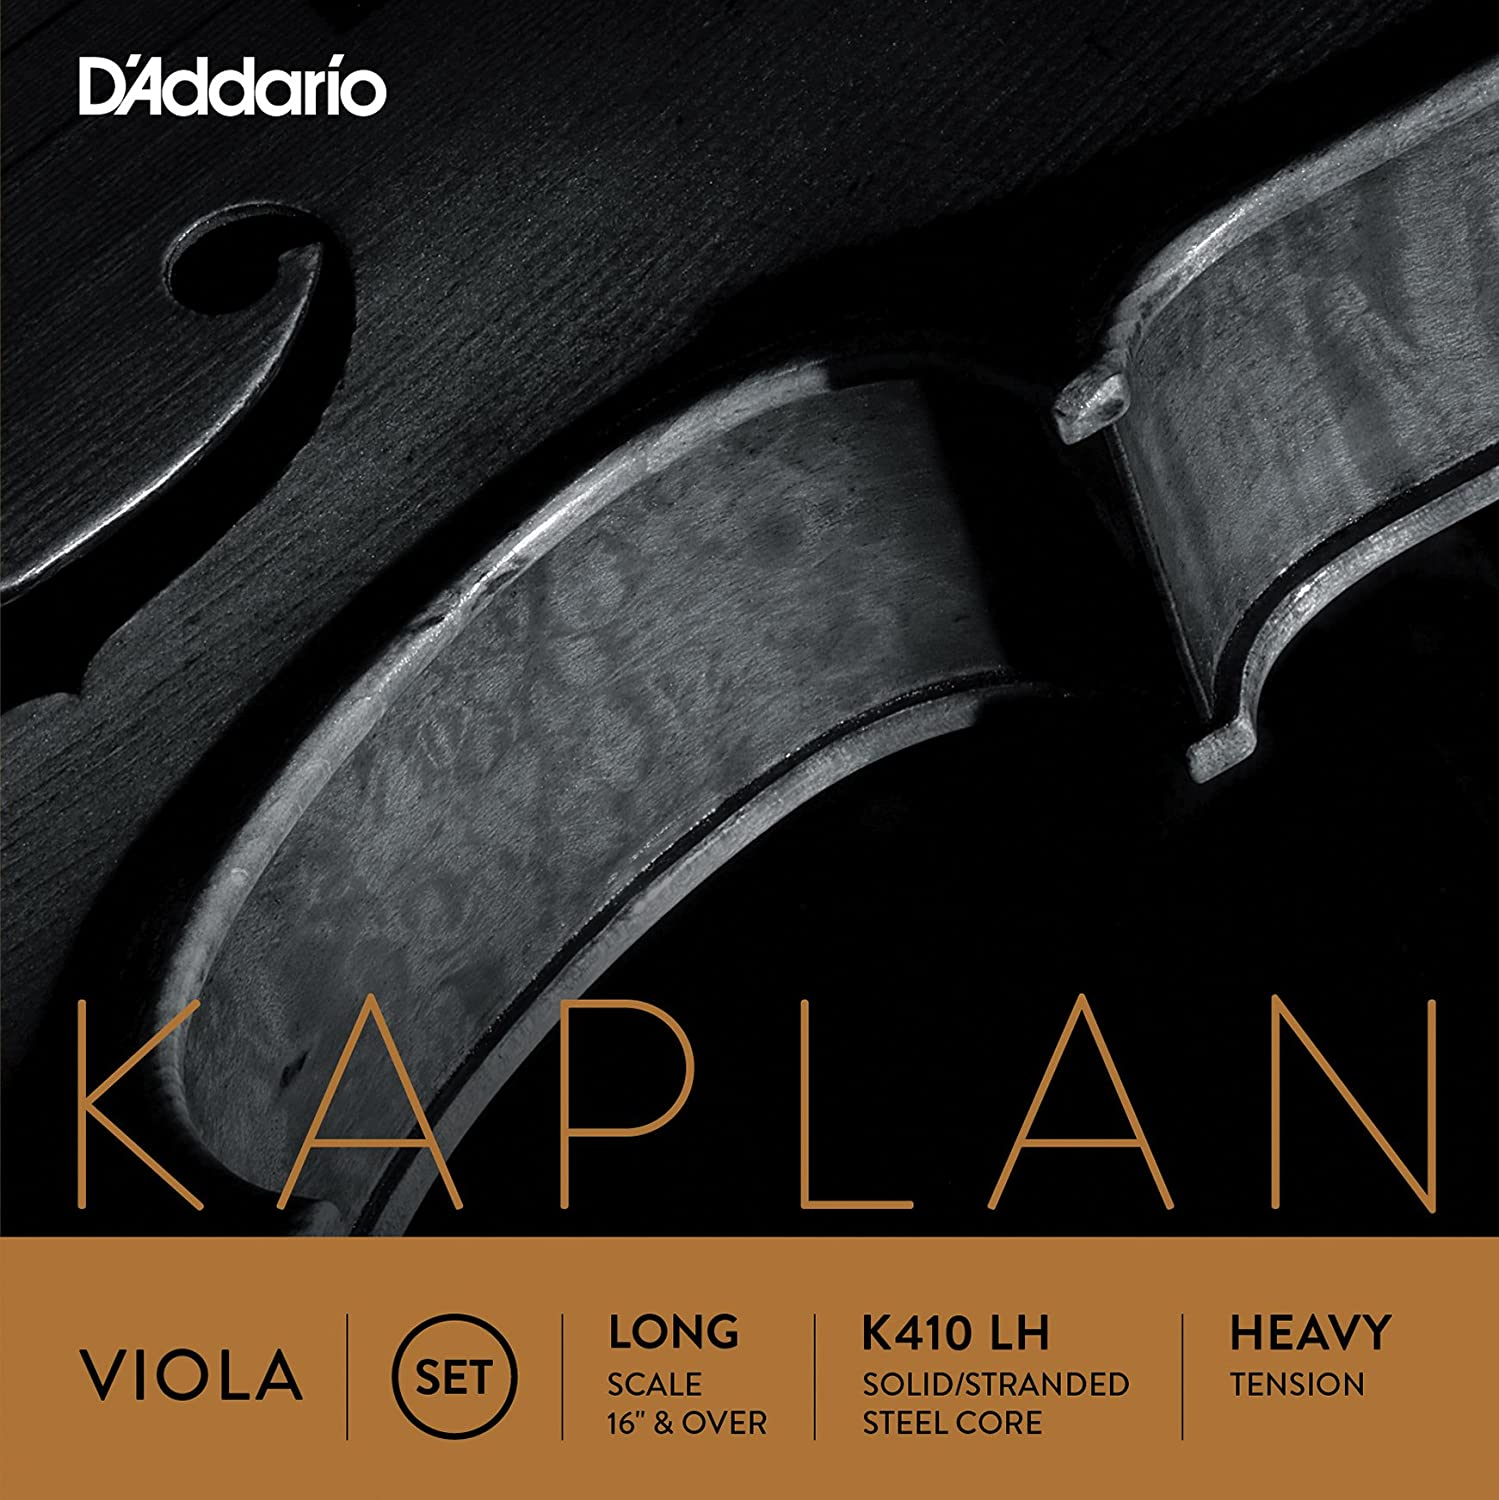 D'Addario Kaplan Viola String Set, Long Scale, Medium Tension D' Addario K410 LM